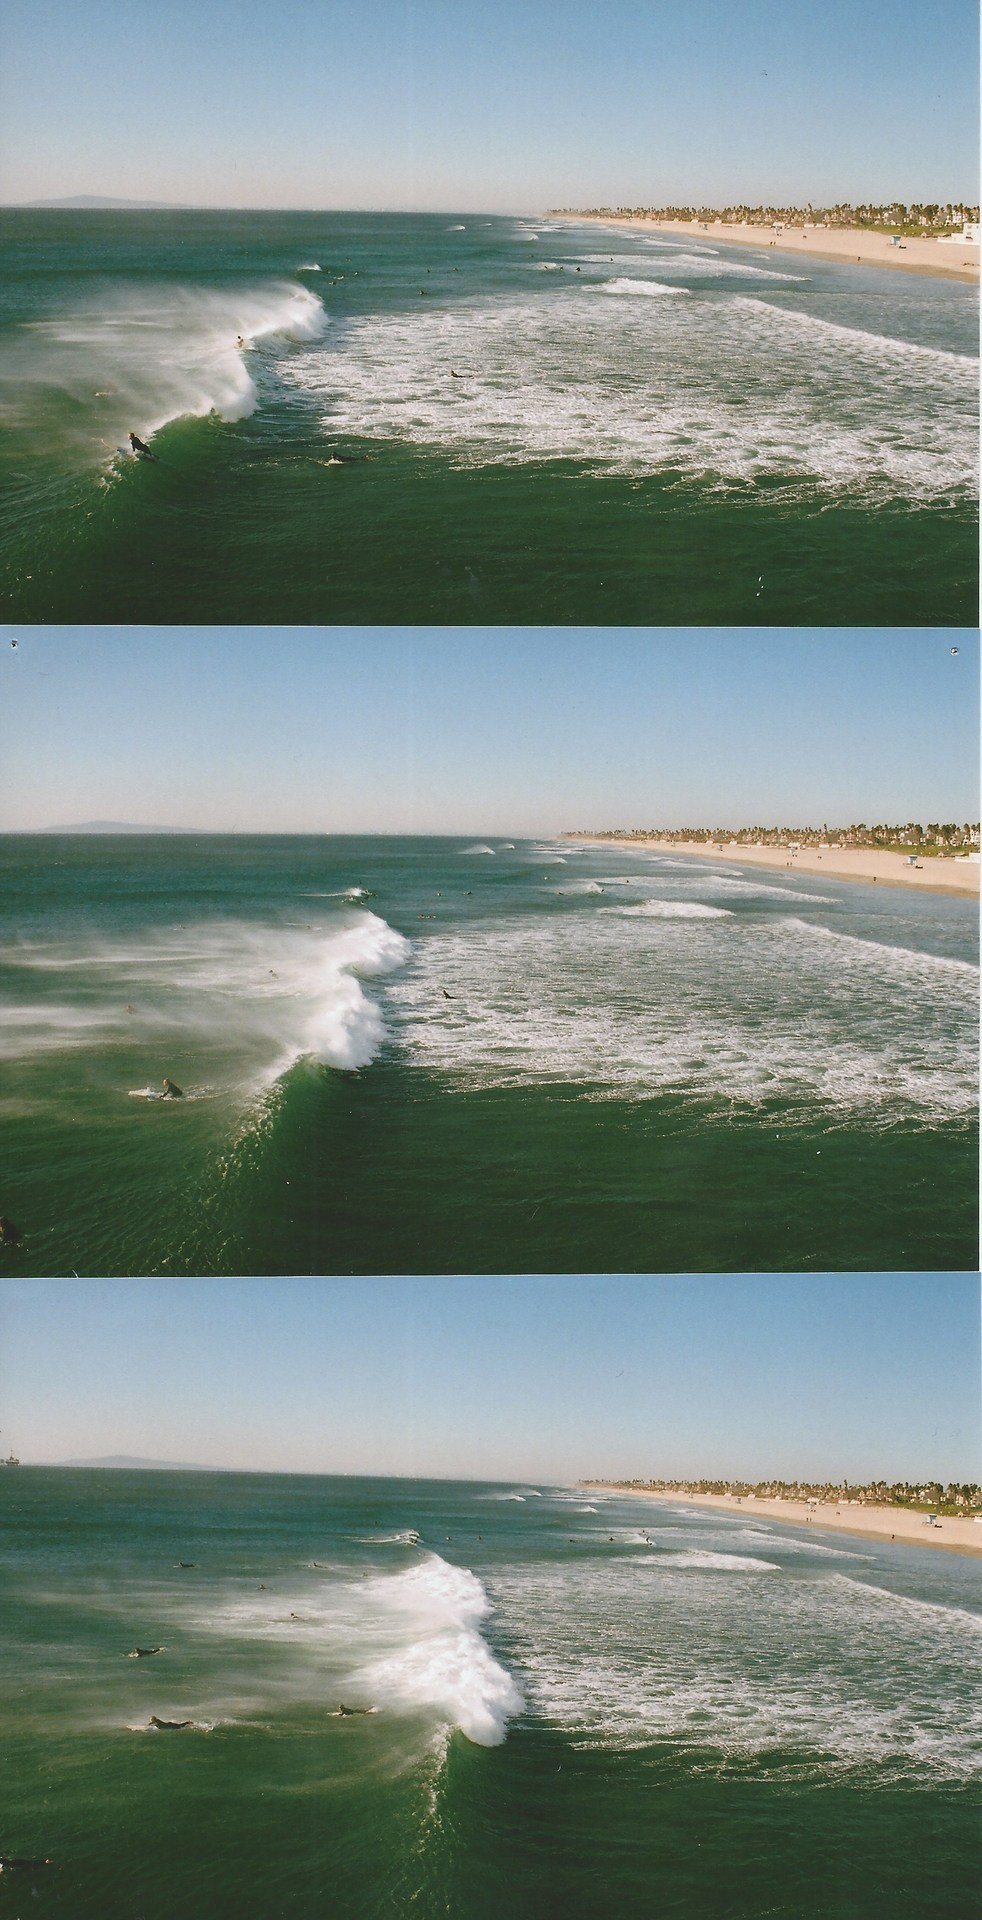 there were some gnarly offshore winds that day. nov, 2011. i've been meaning to rescan these for a while because the original scans messed up the colors and made some parts grey and it was ugly. these were taken almost exactly a year ago, this was my first roll of film that i ever shot.